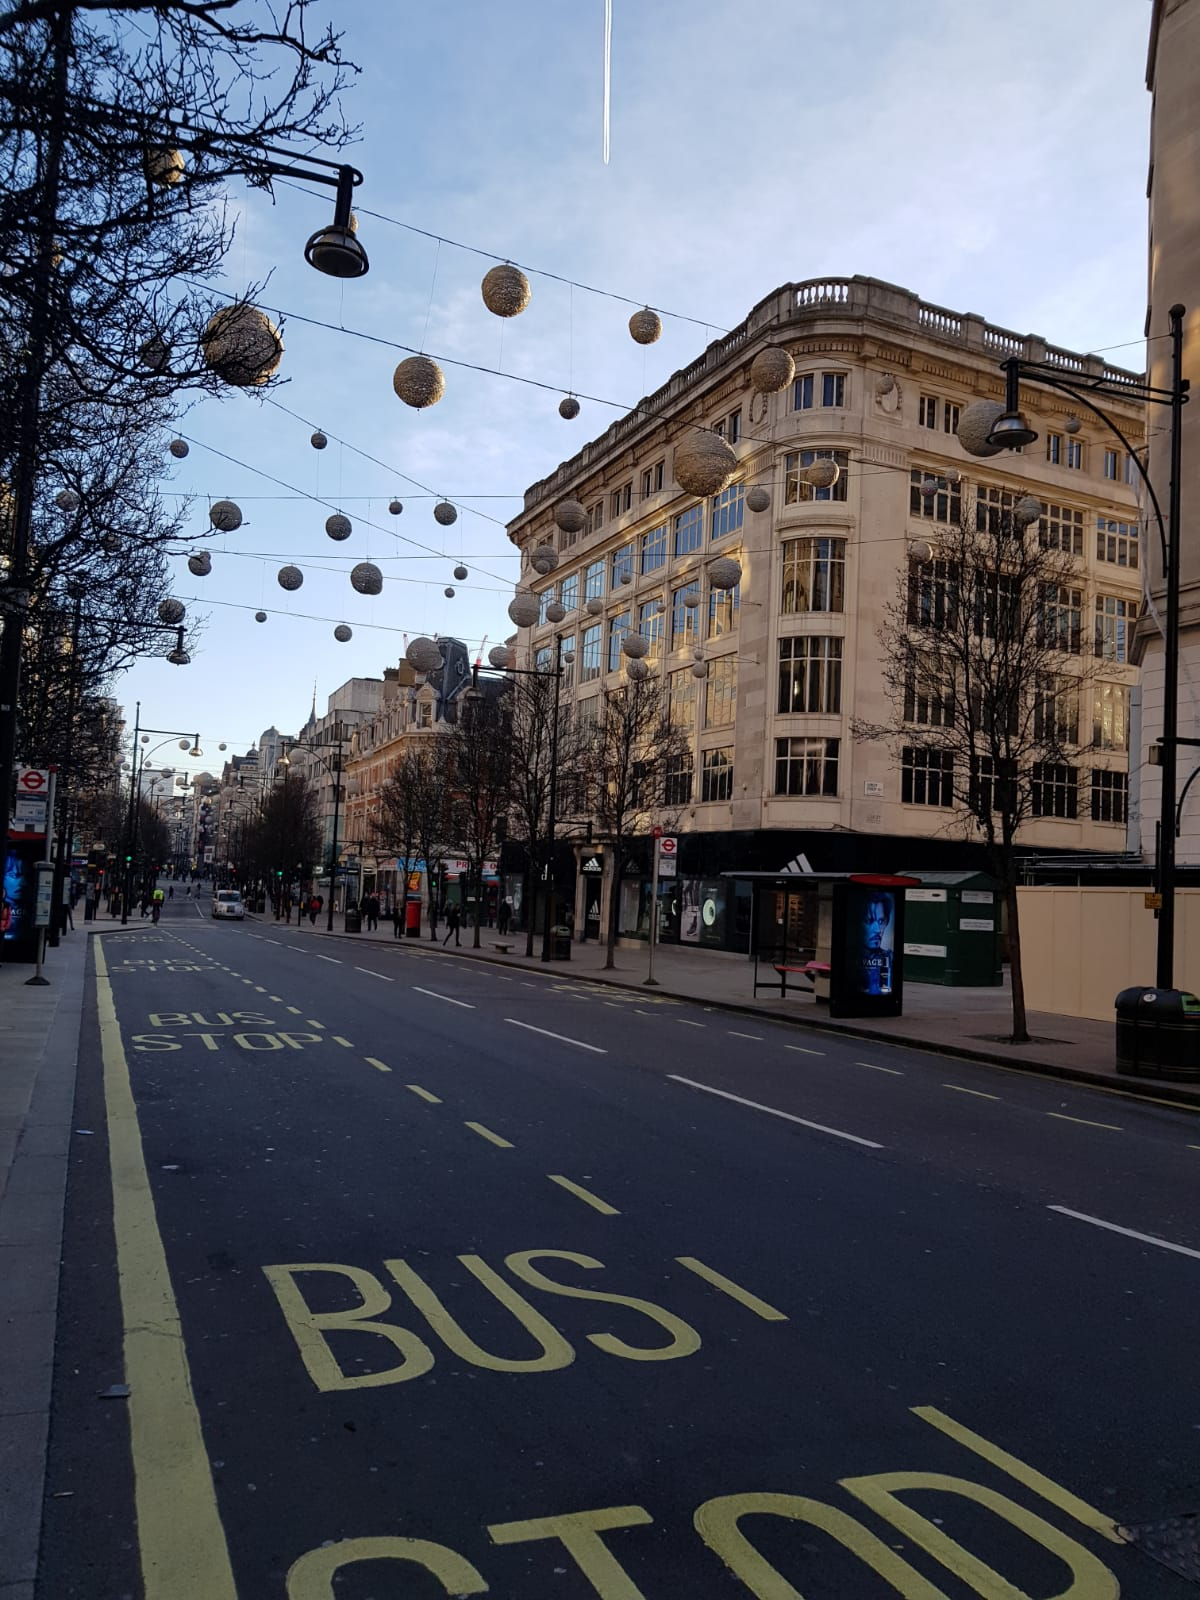 Oxford Street in London Weihnachten